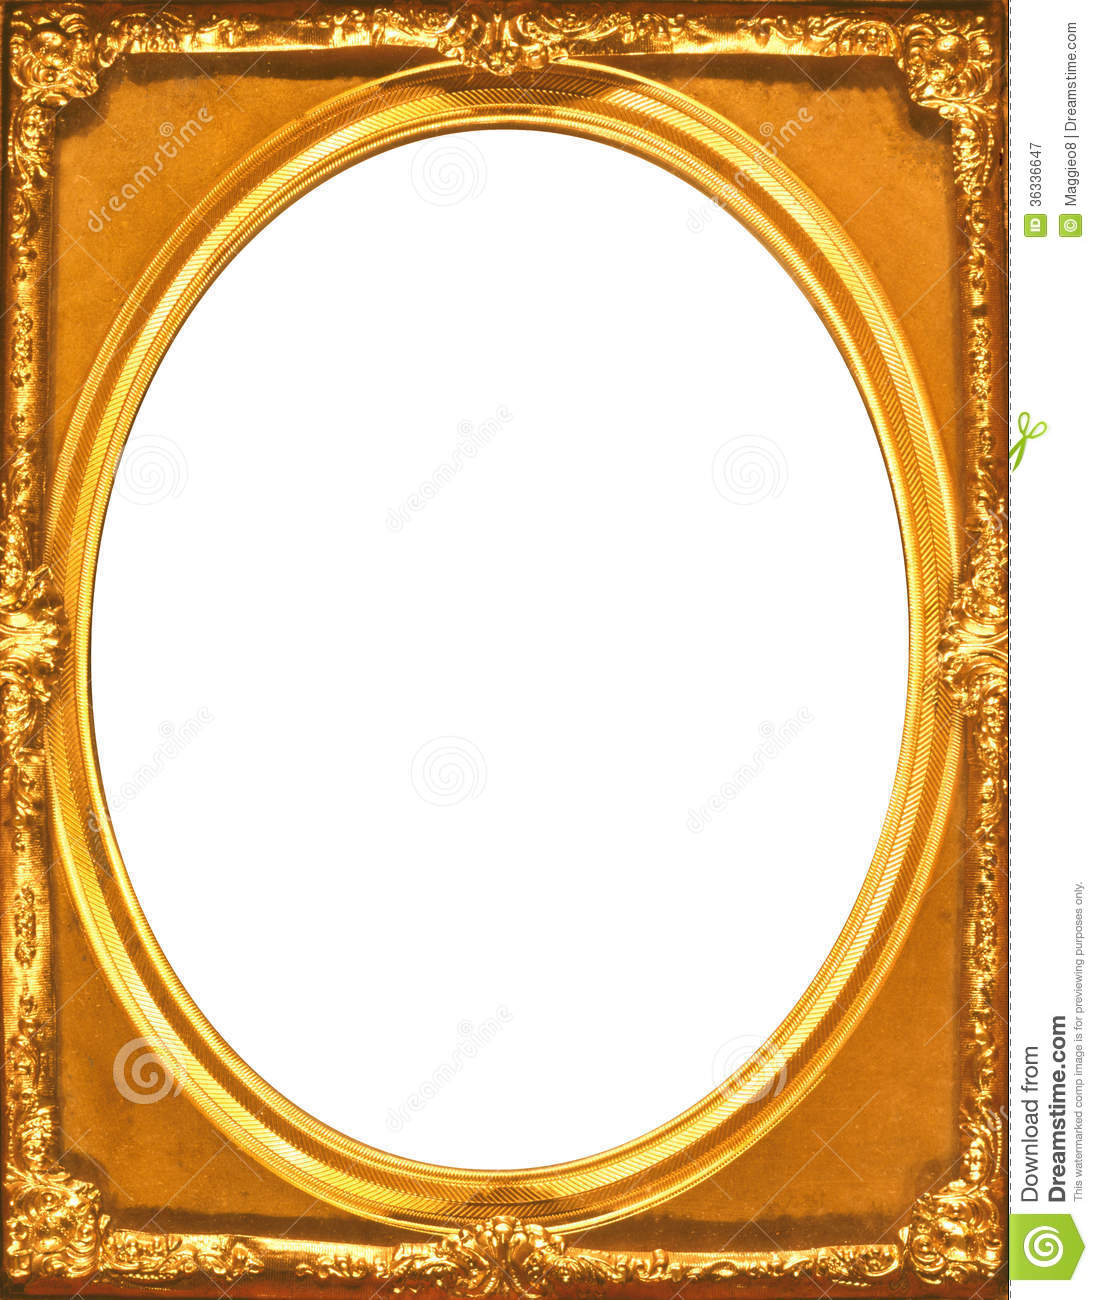 Vintage gold picture frame stock image. Image of intricate - 36336647